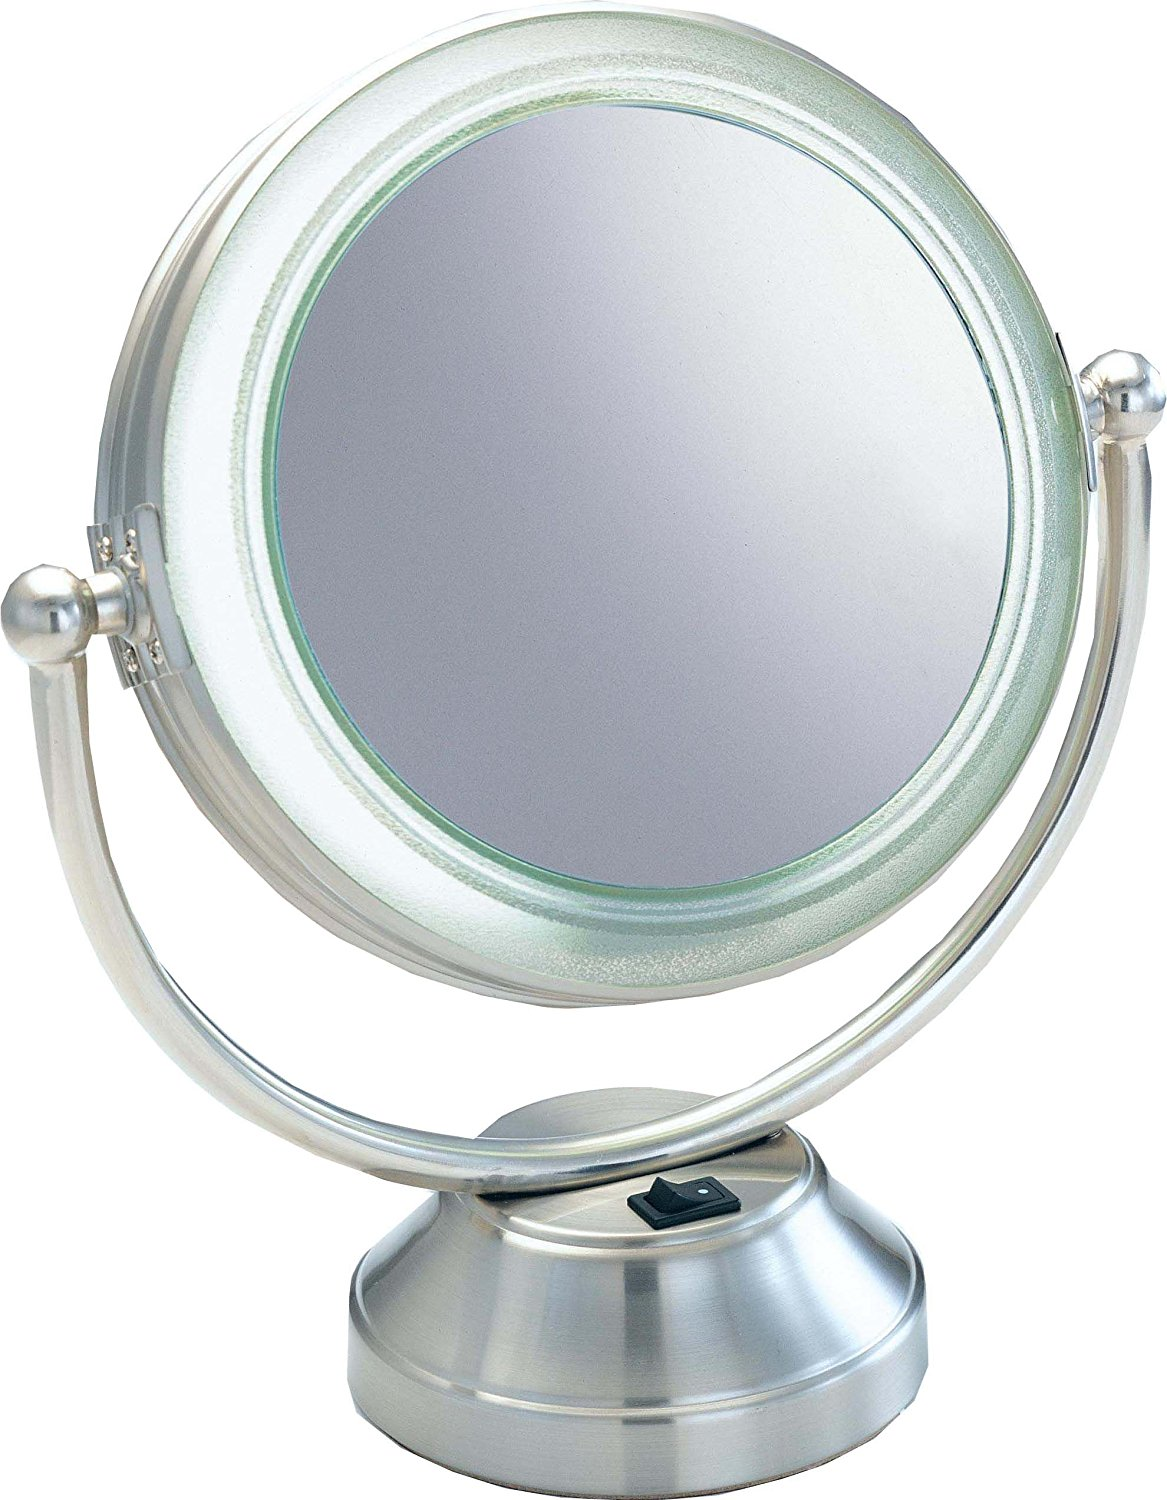 Conair Lighted Makeup Mirror | Lighted Makeup | Double Sided Vanity Mirror